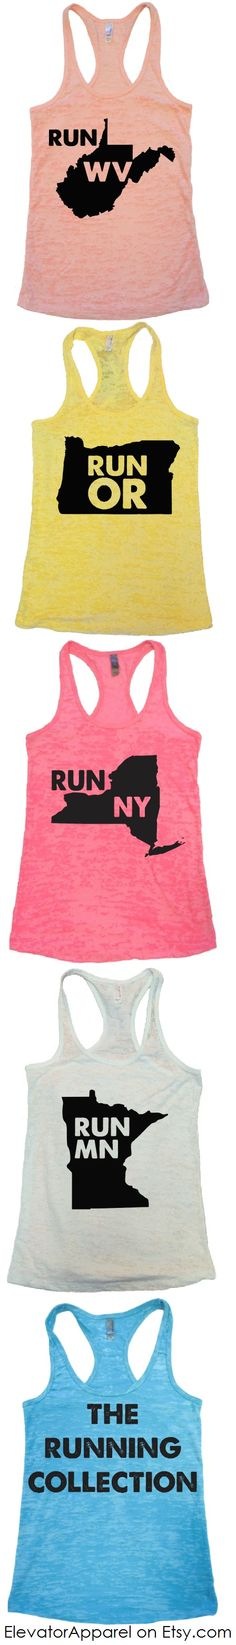 The Running Collection - Custom Tanks for any State, City, or Country! by Elevator Apparel